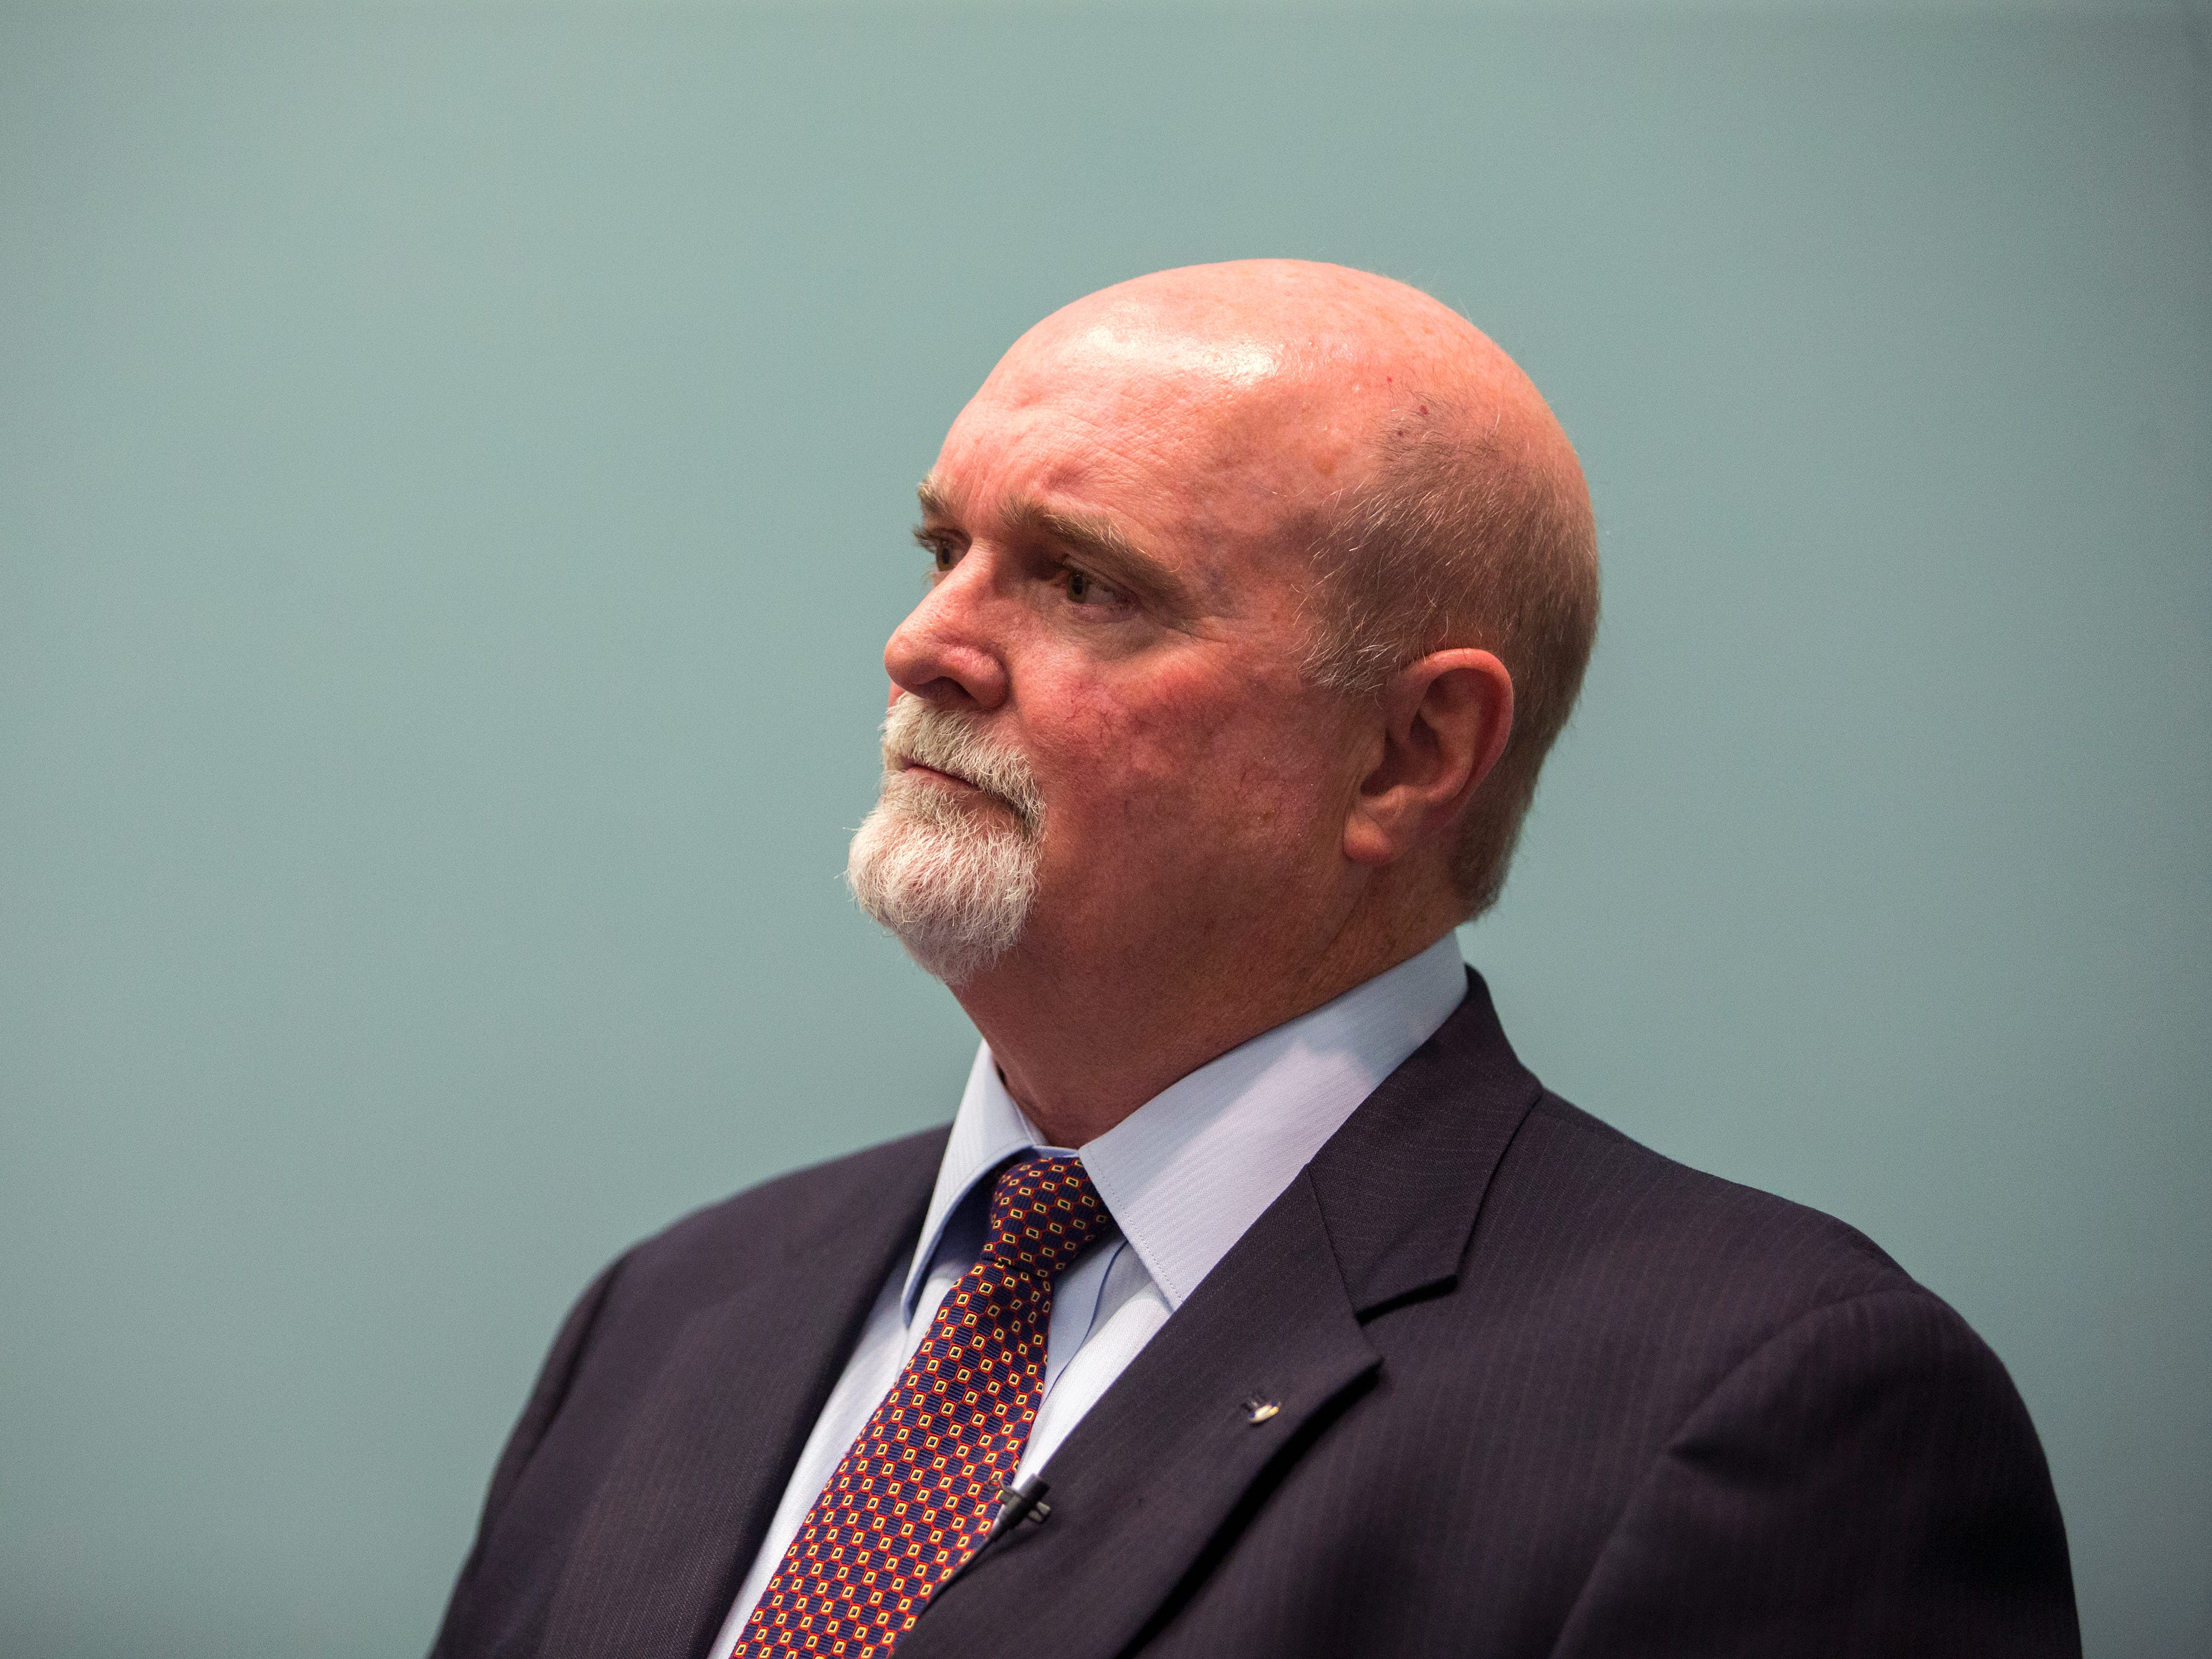 Keith Selman is one of four finalists for Corpus Christi's city manager position.